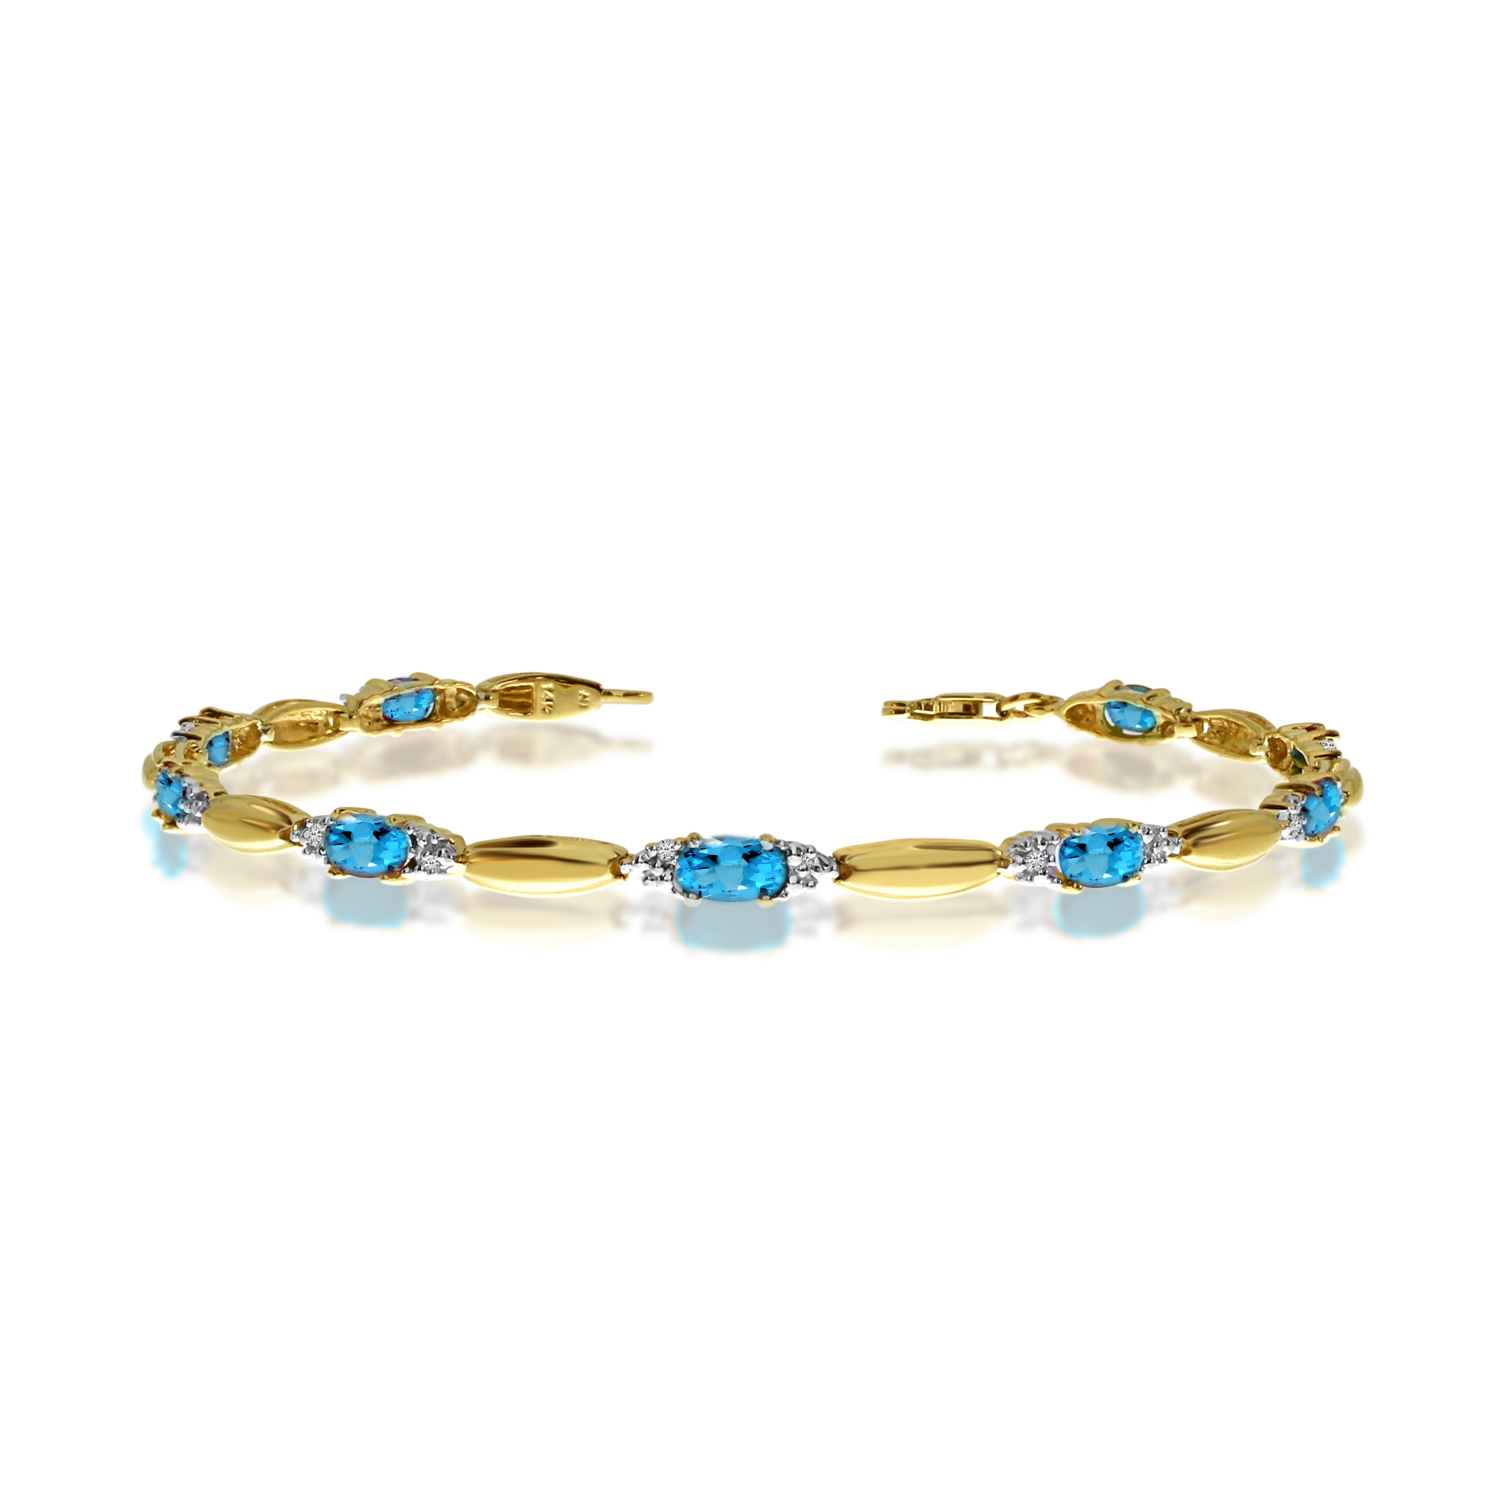 10K Yellow Gold Oval Blue Topaz and Diamond Bracelet by